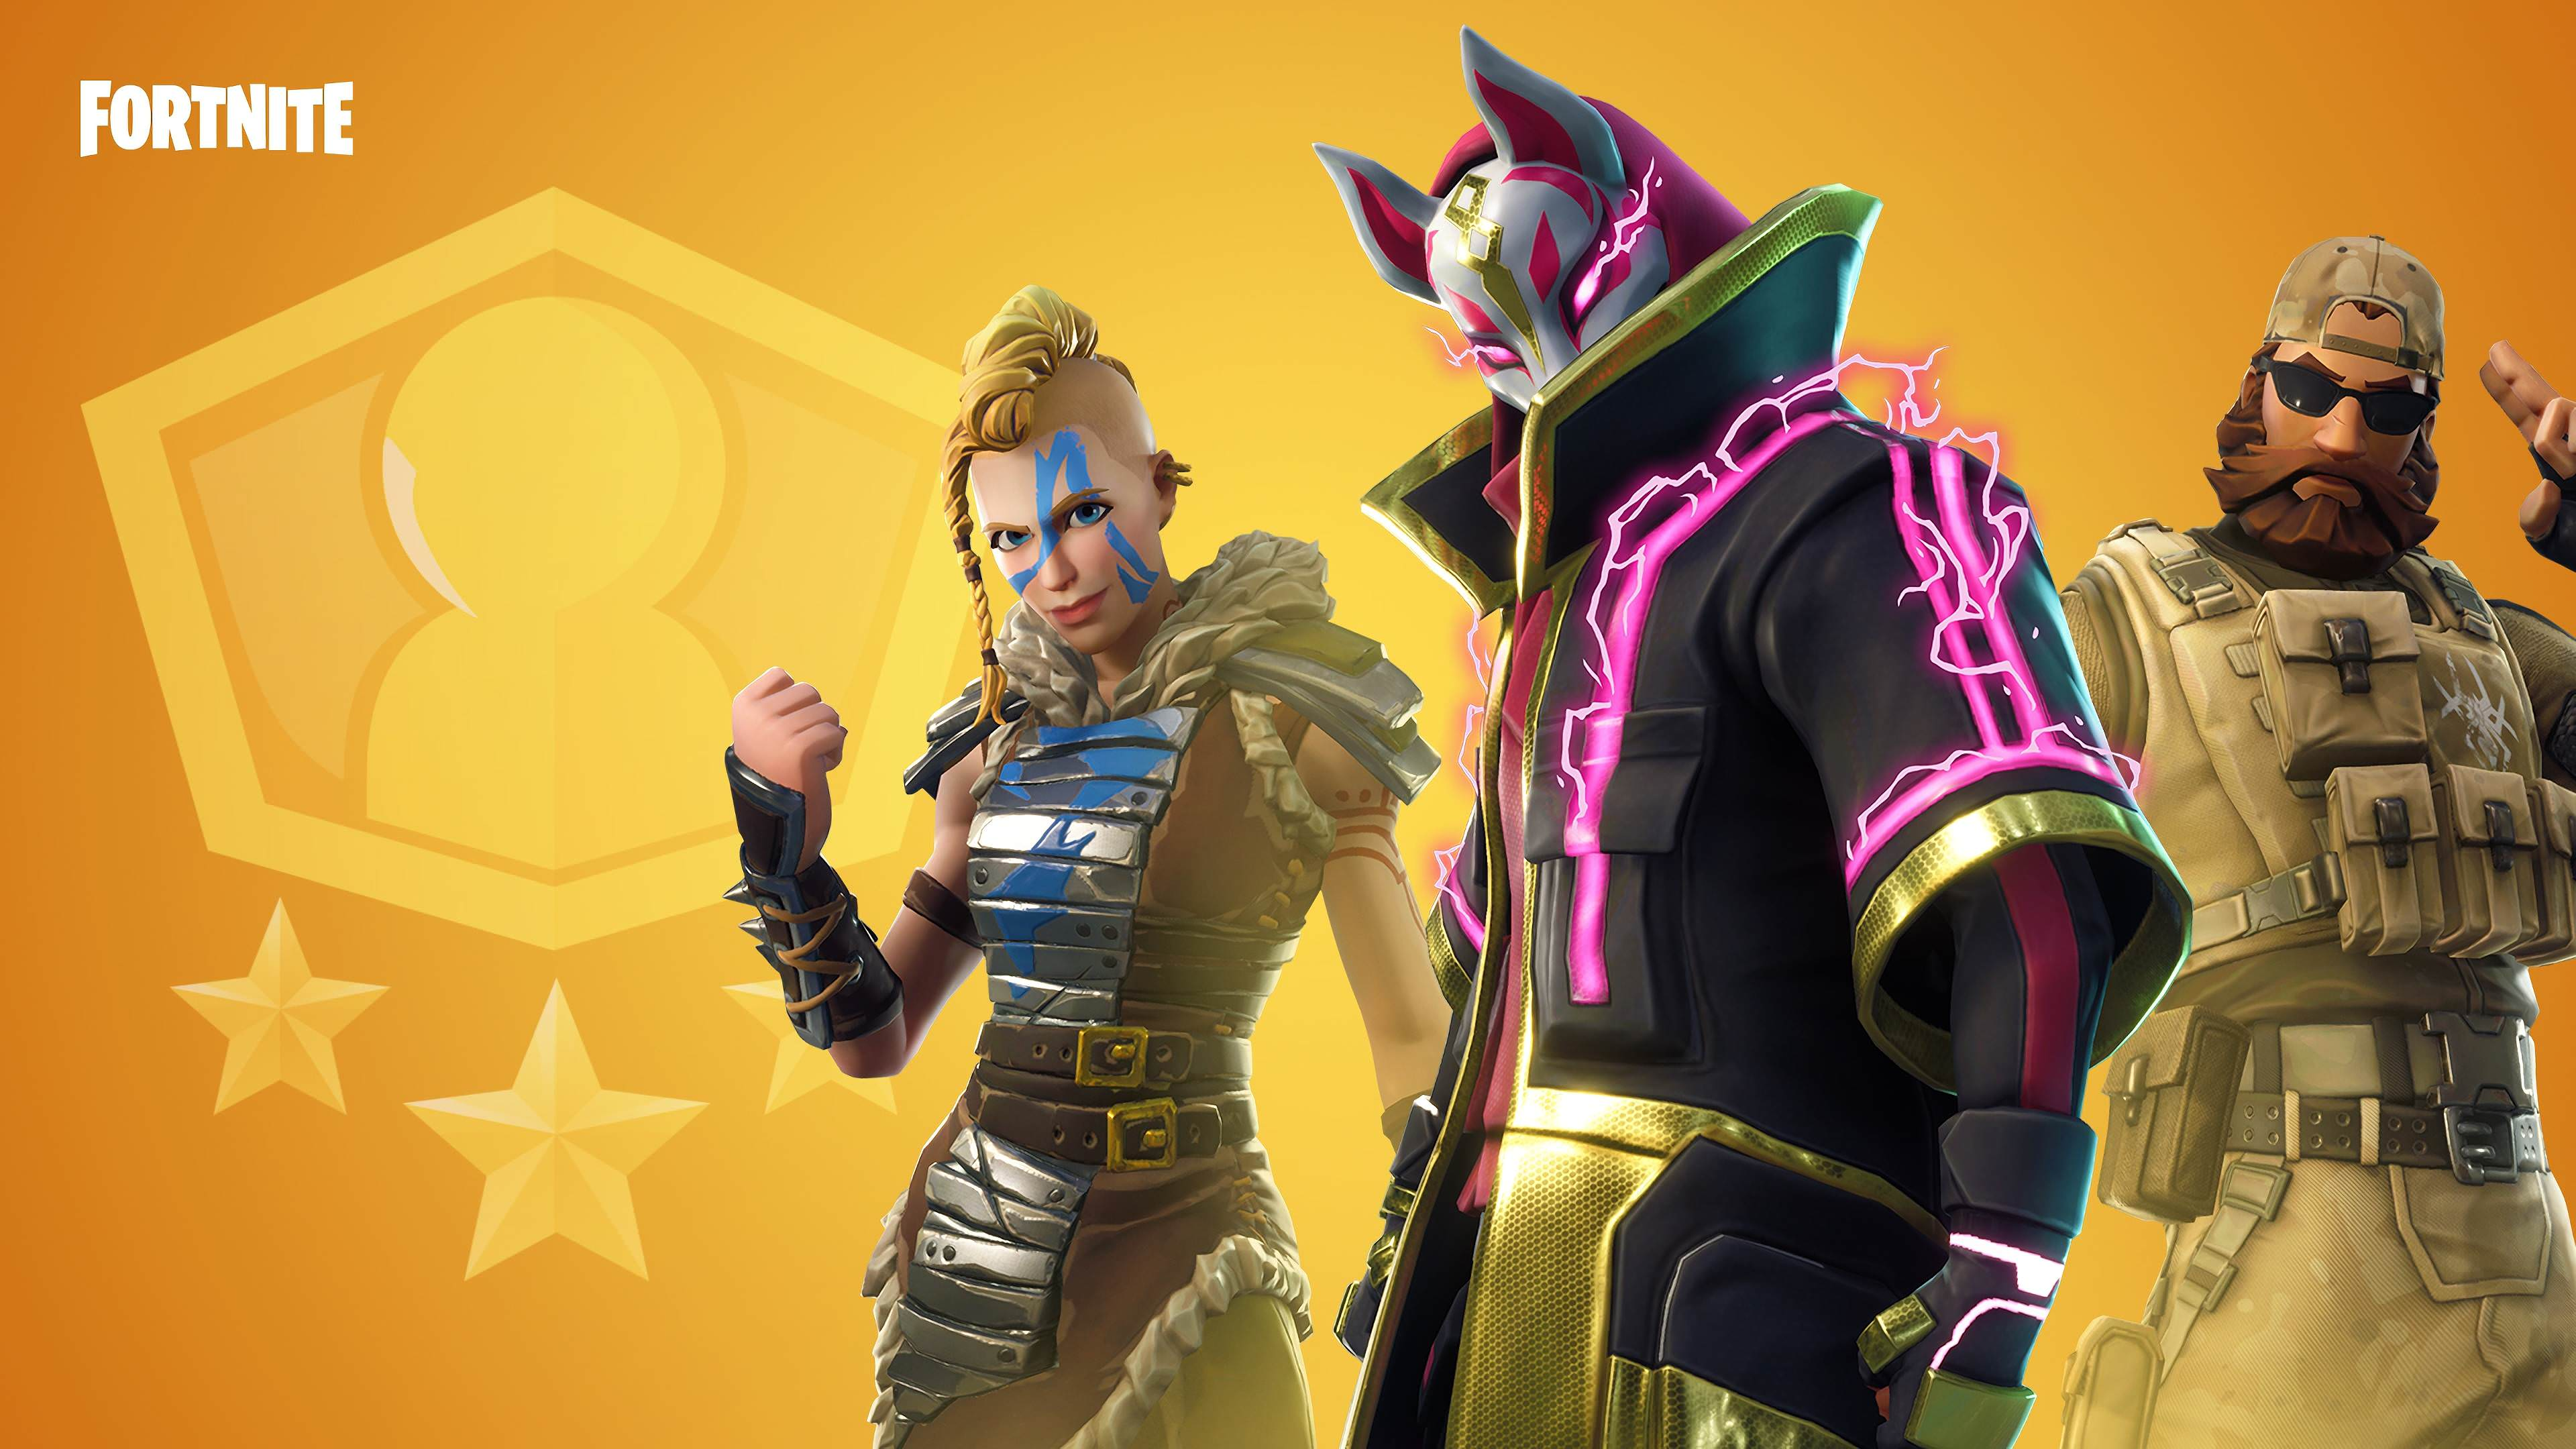 Huntress 4K 8K HD Fortnite Battle Royale Wallpapers